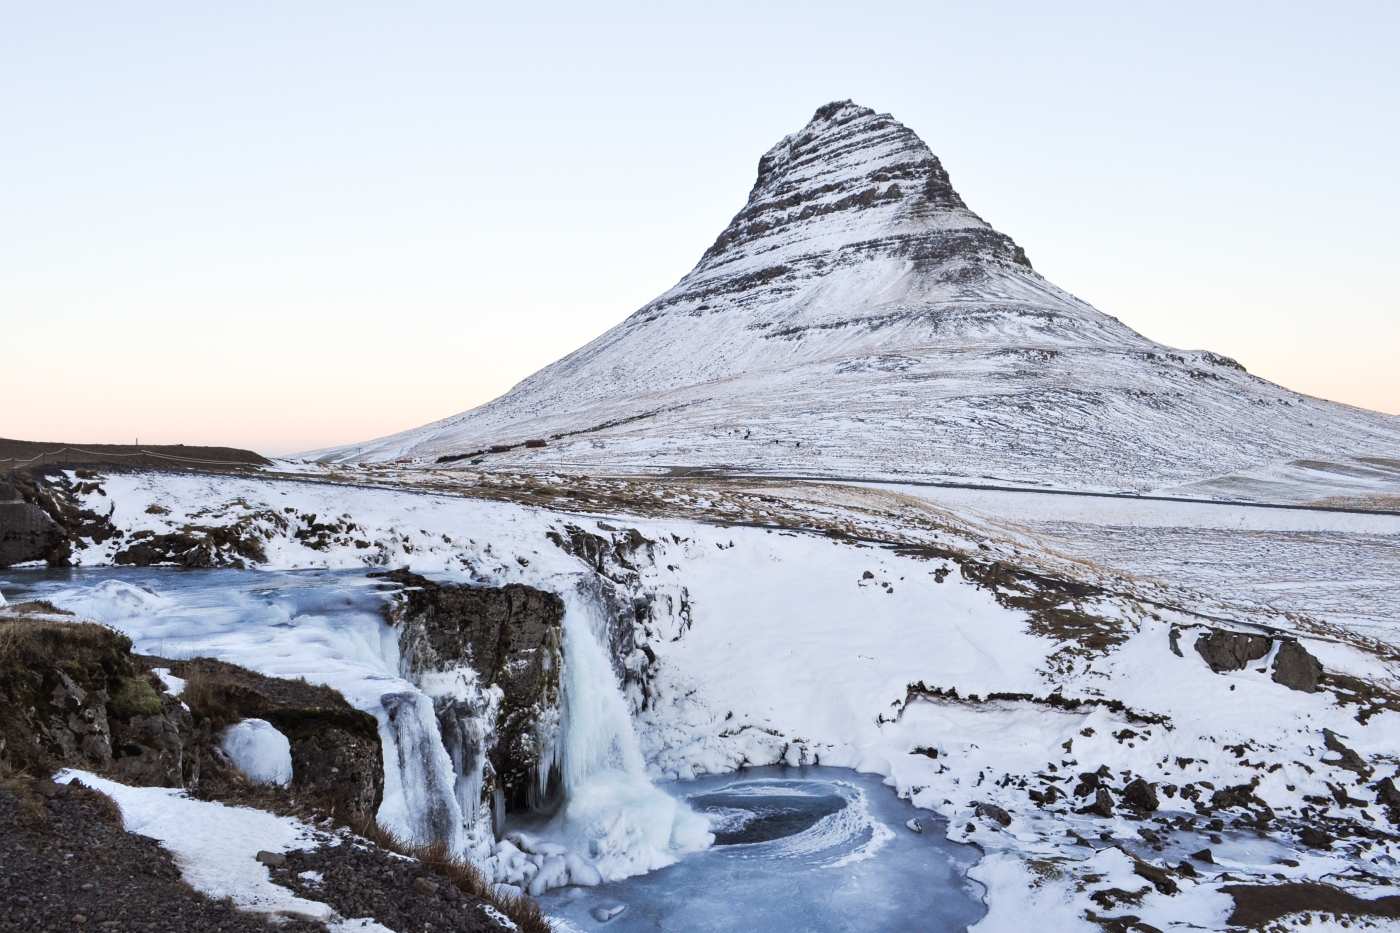 Triangle-shaped mountain behind a frozen waterfall